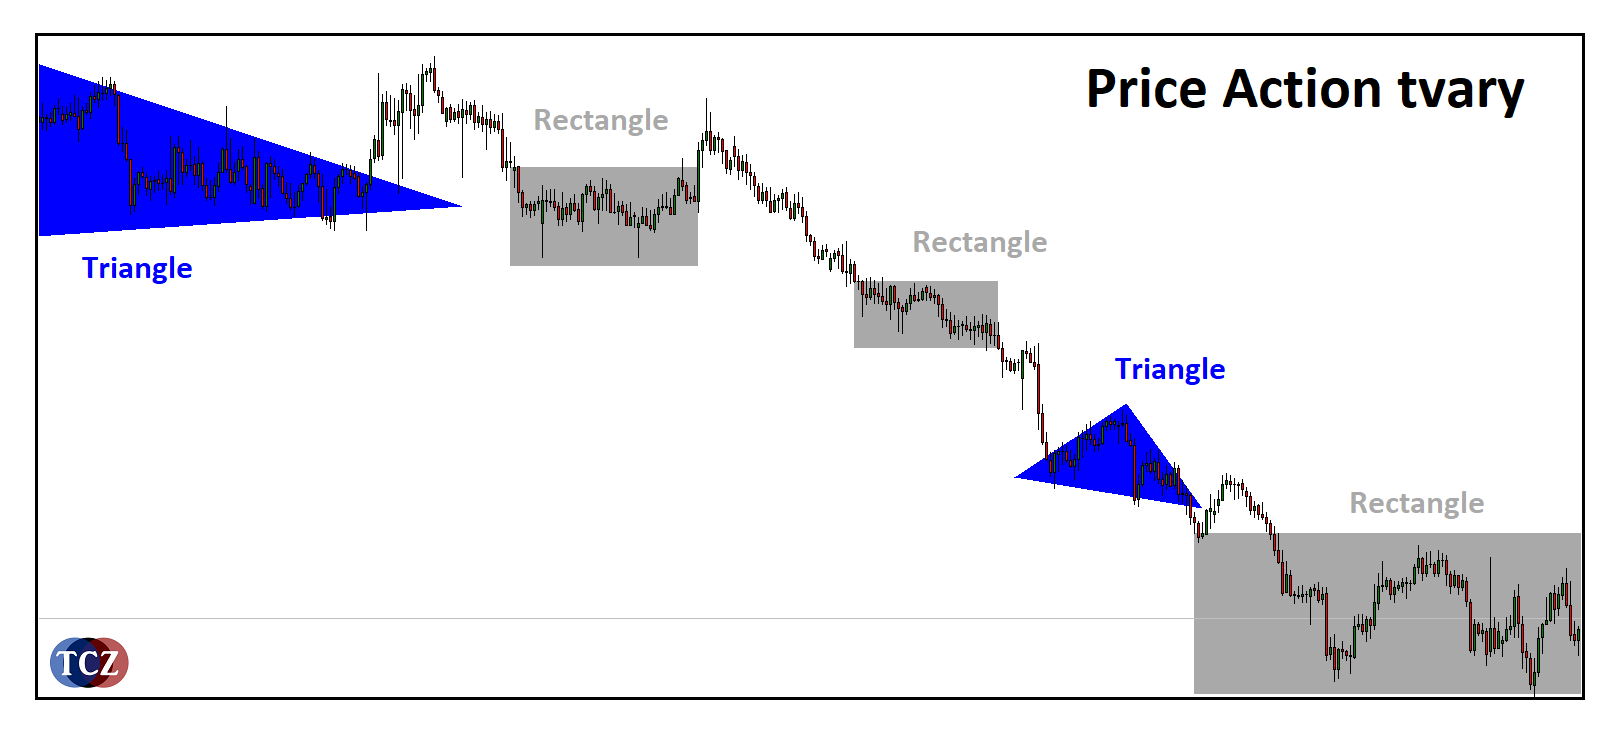 Price action tvary